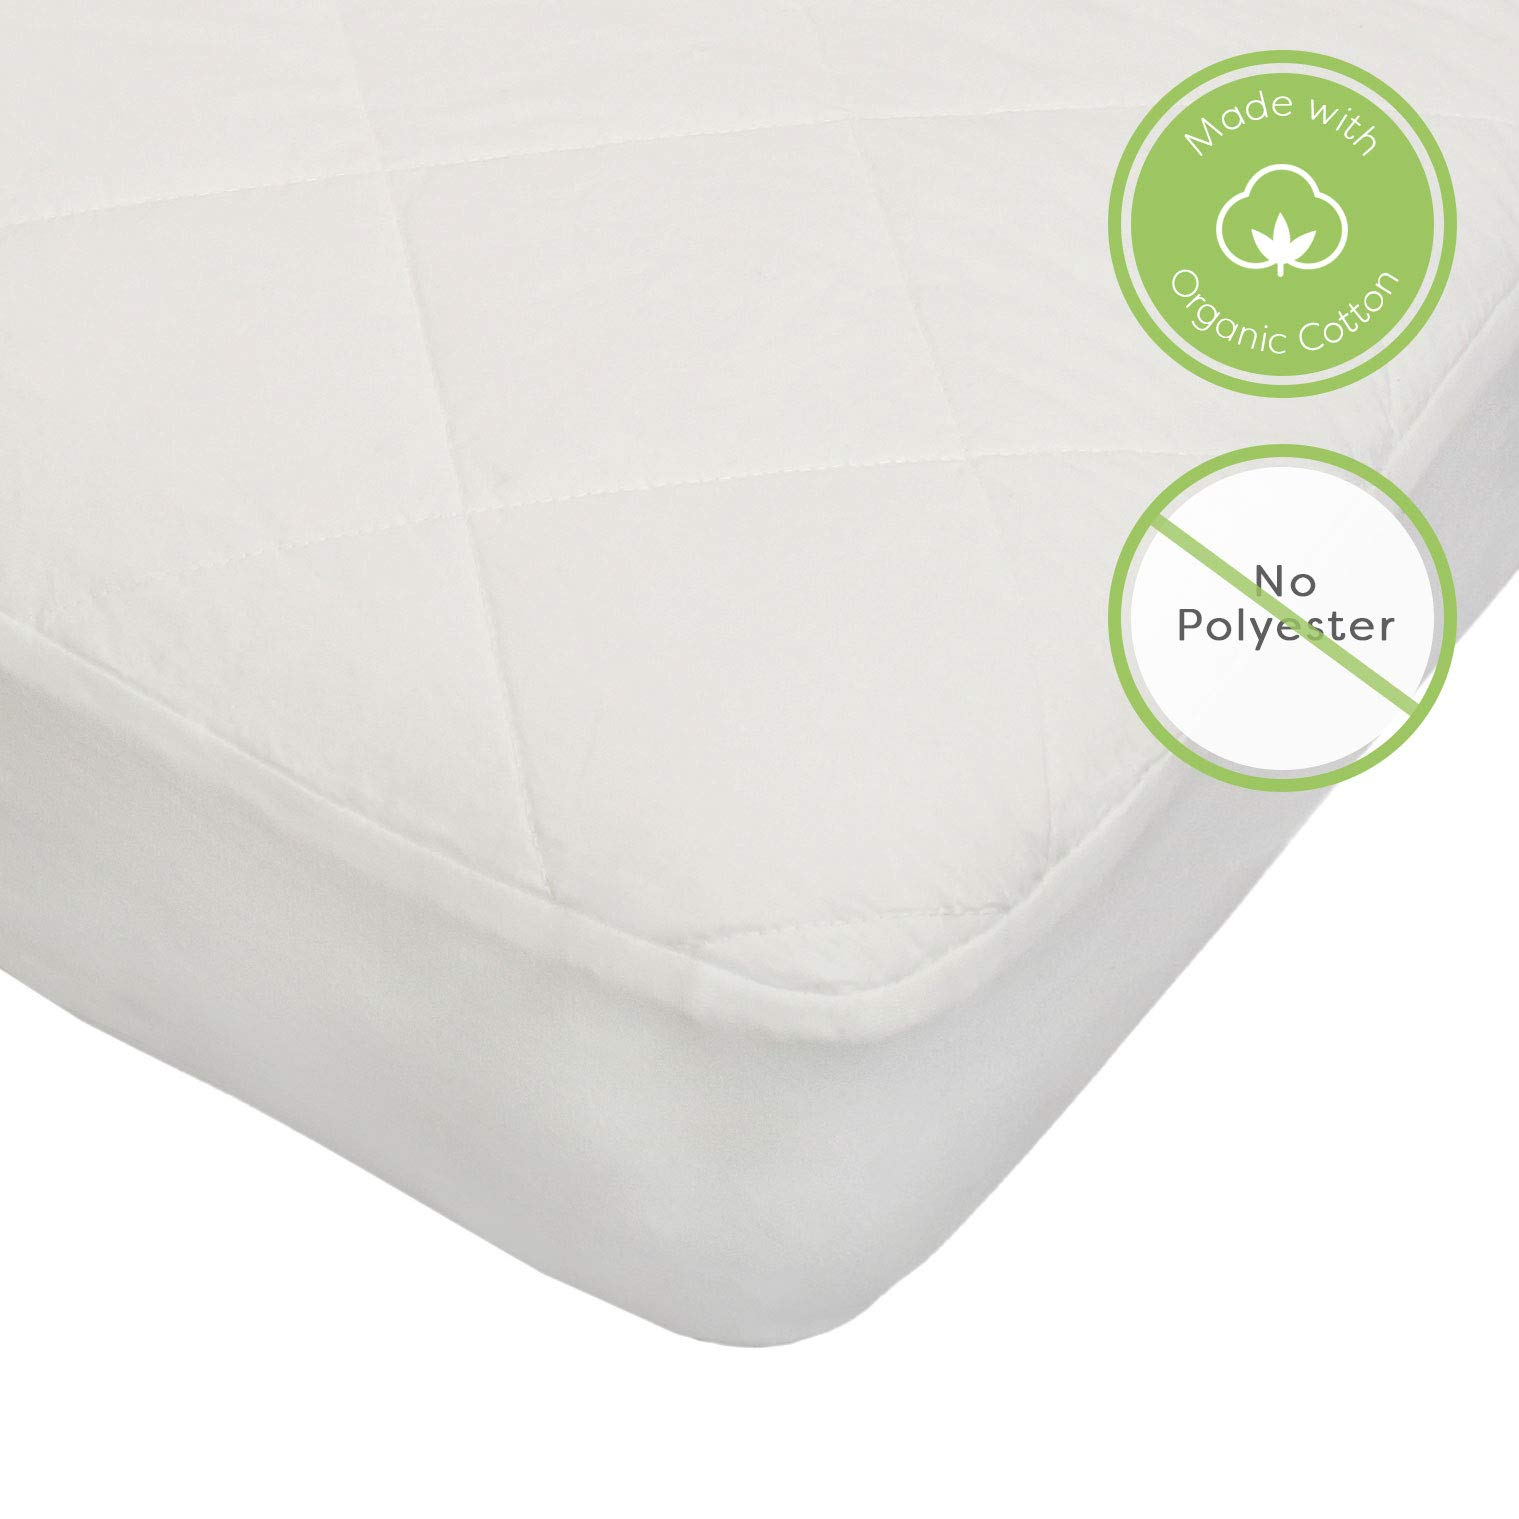 Organic, Waterproof Baby Crib Mattress Protector Pad (Not a Mattress). Polyester and Vinyl Free. Quilted, Breathable. Responsibly-Made with 100% GOTS-Certified Organic Cotton. by Sonsi. by Sonsi (Image #3)